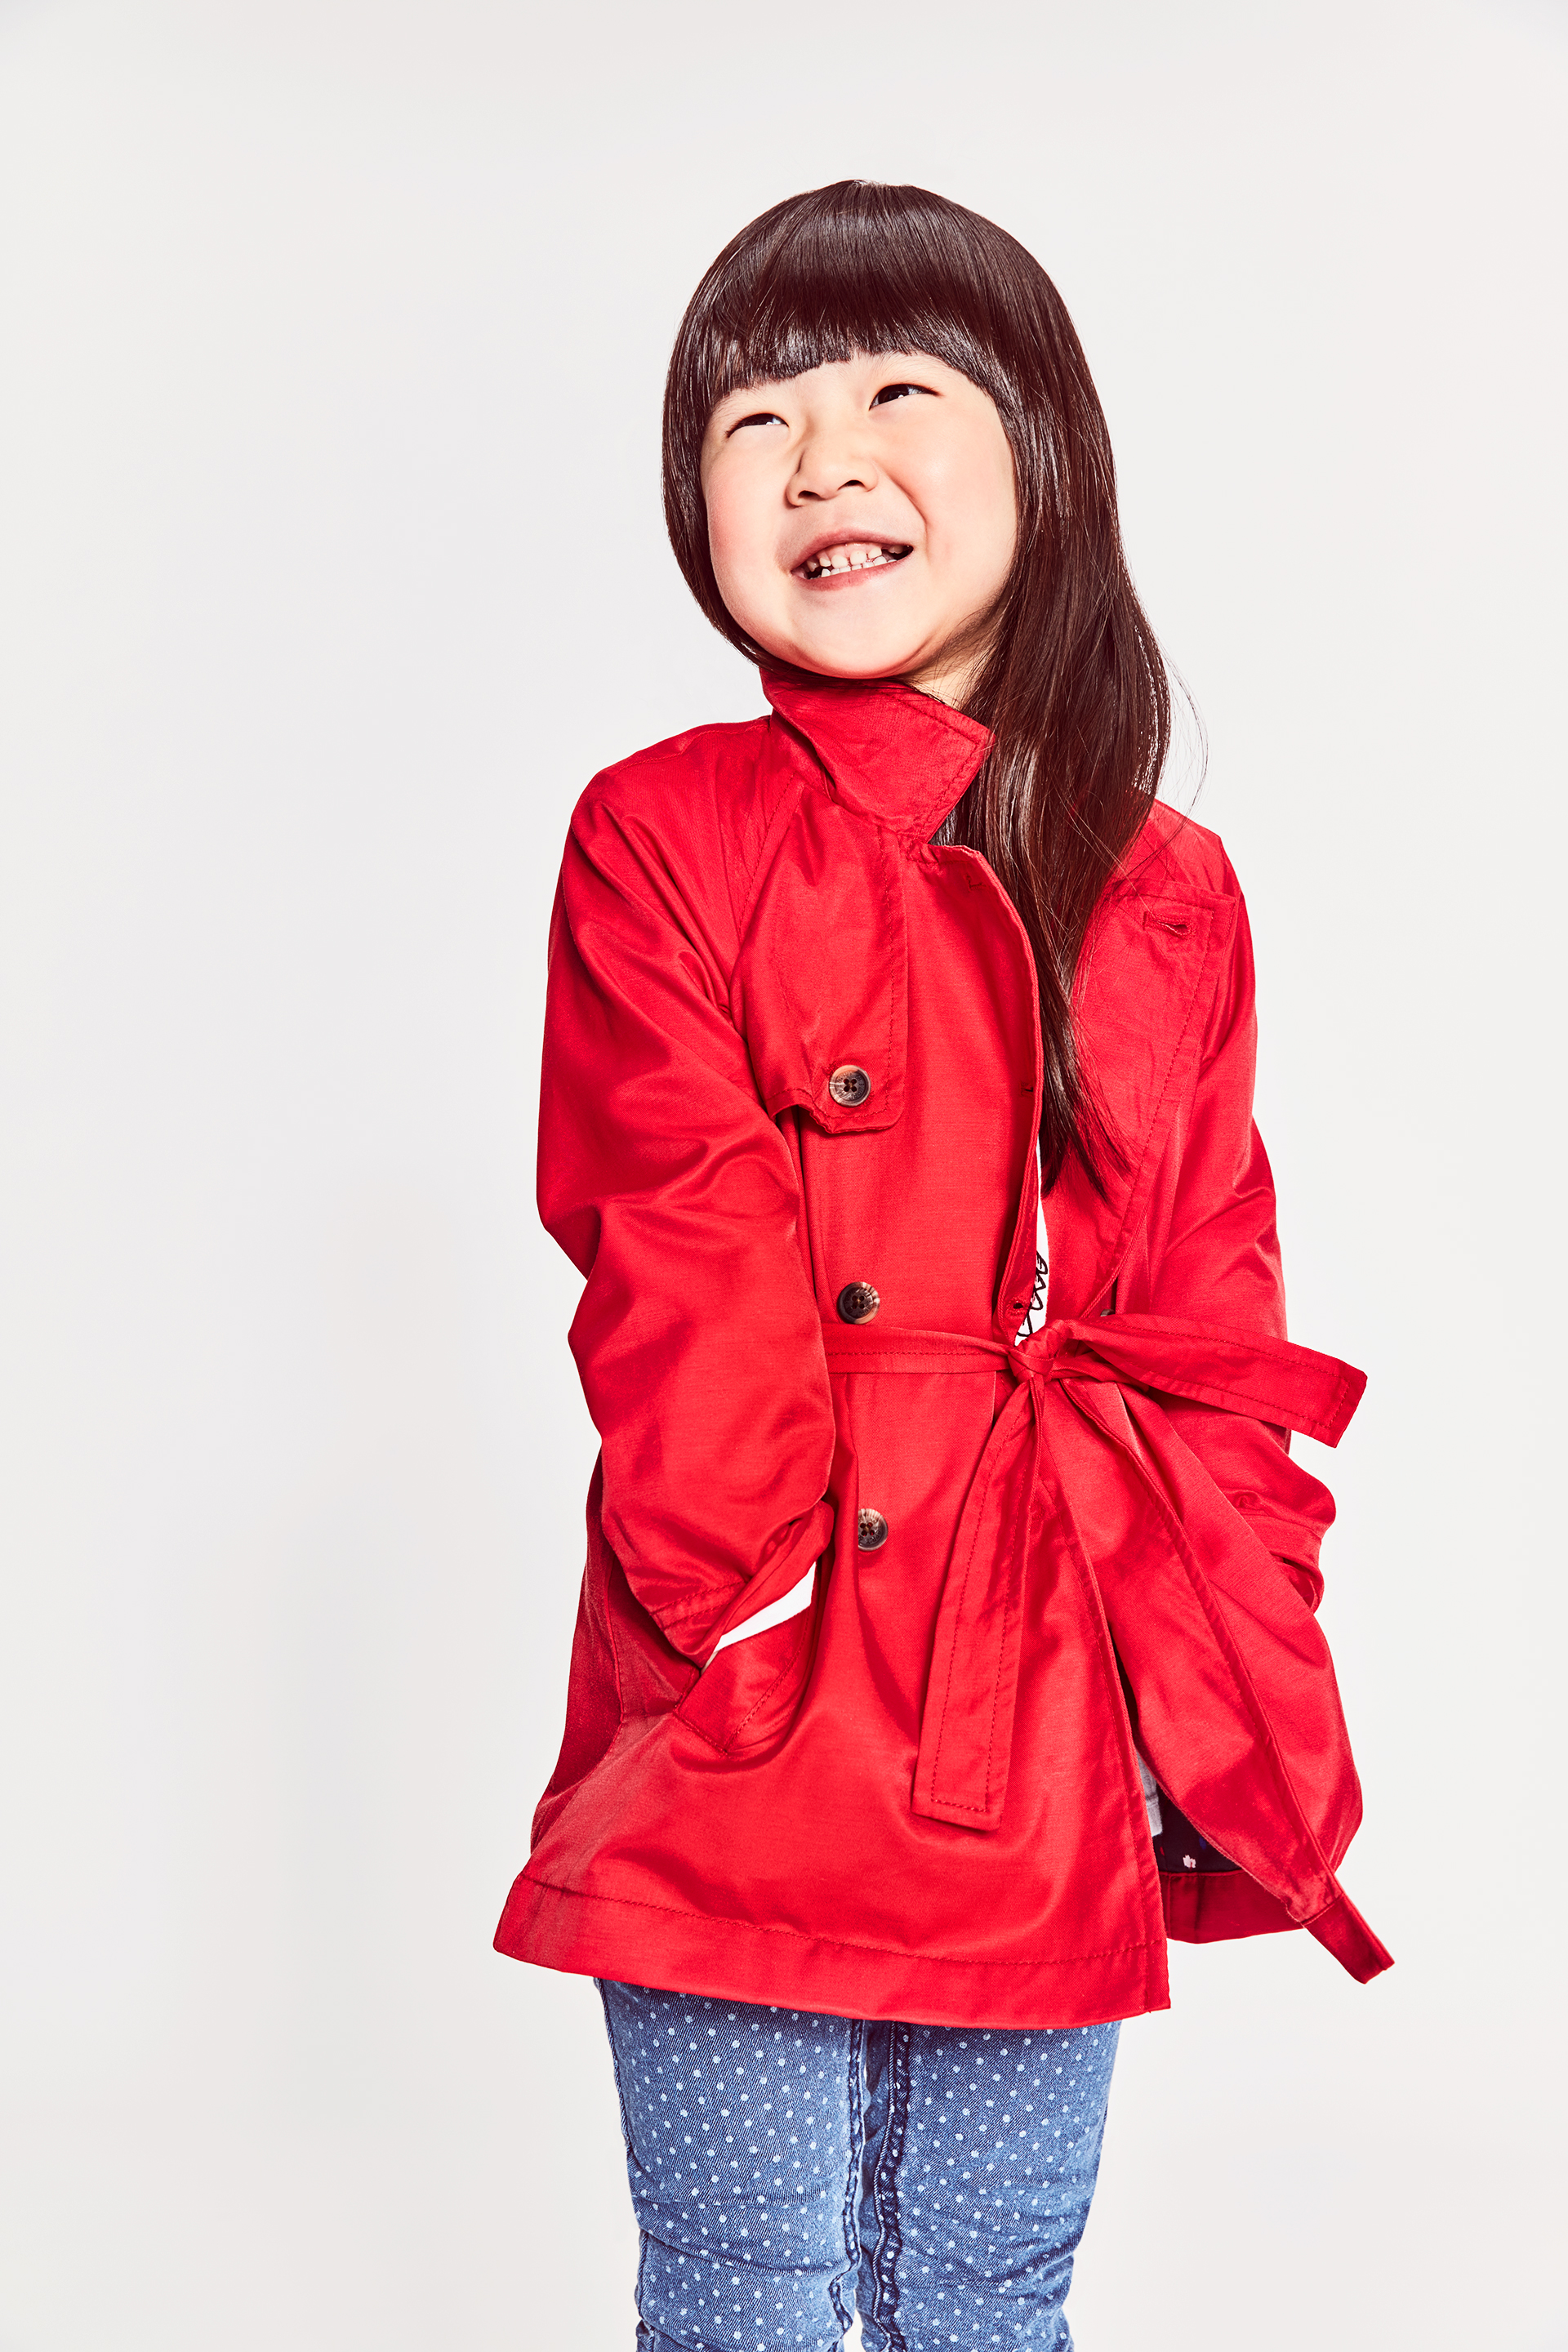 chinese girl bright red coat smiling kids fashion